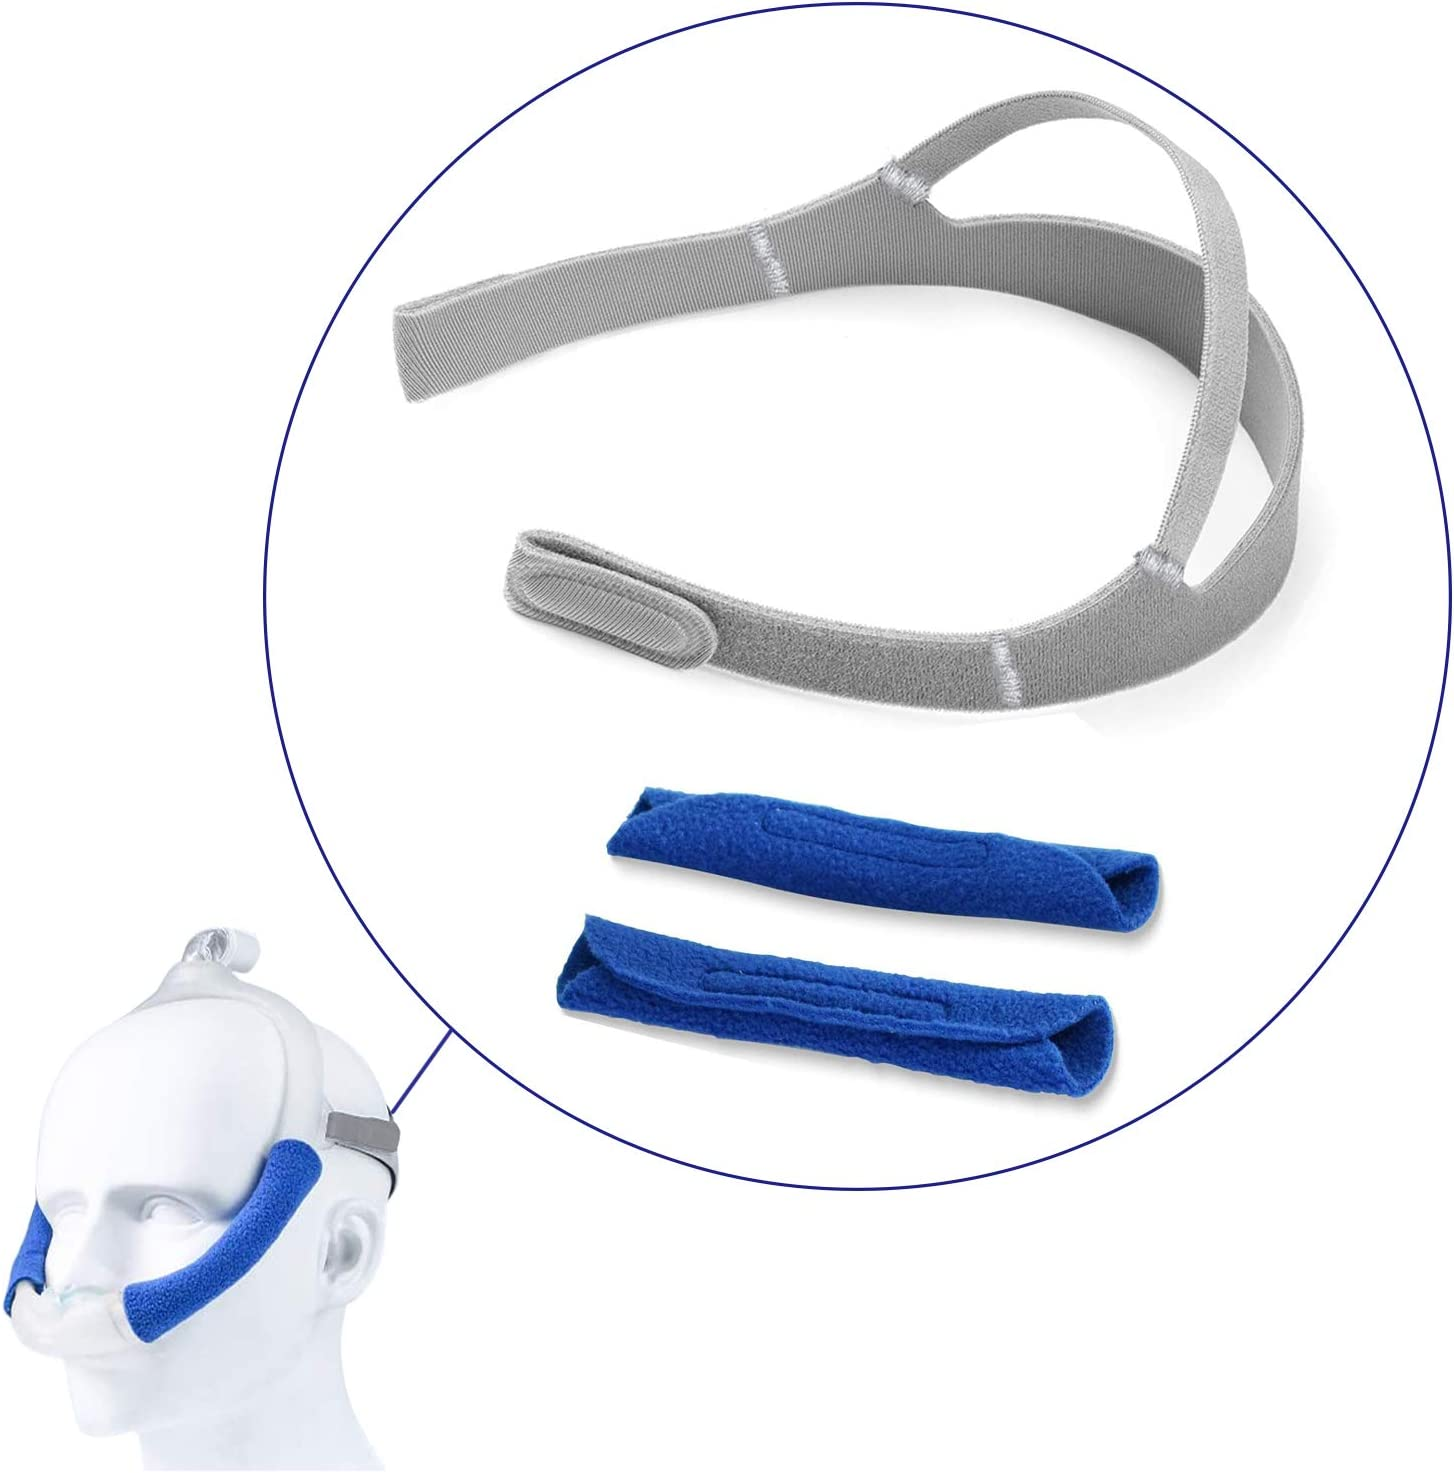 CPAP Headgear with 2-Pack Strap Covers for Dreamwear Nasal Mask, LALASTAR Replacement for Respironics DreamWear Headgear, CPAP Nasal Mask Strap for CPAP Machine (Headband+Covers)